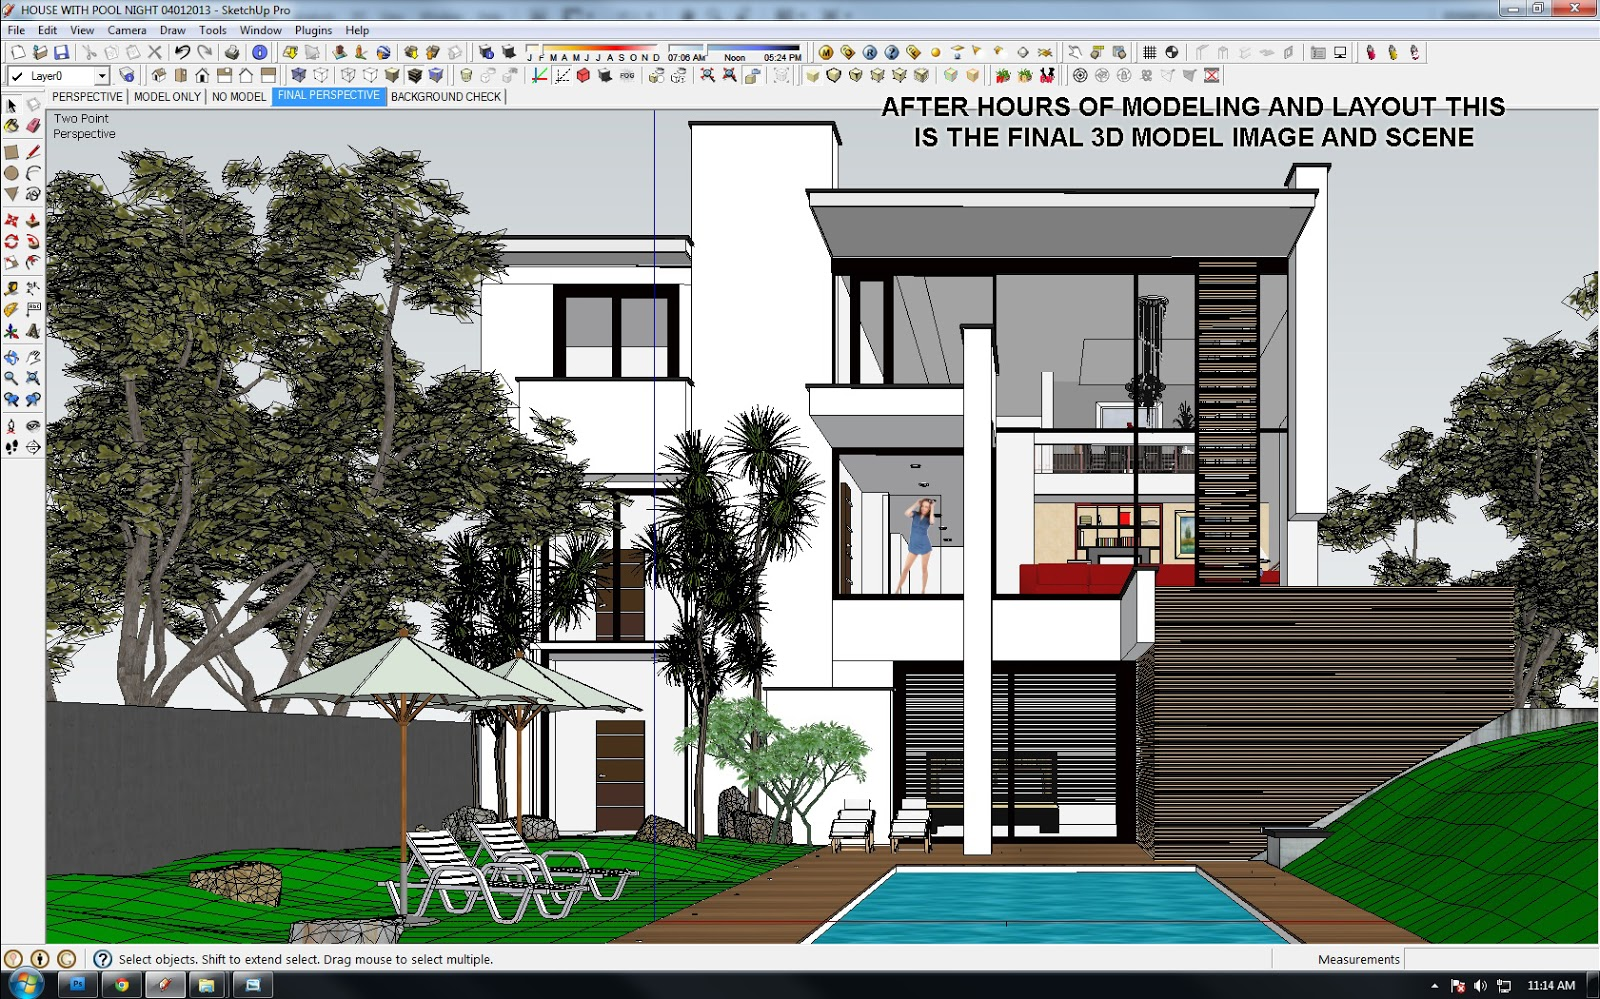 Sketchup texture vray tutorial exterior night scene 2 for Setting render vray sketchup exterior